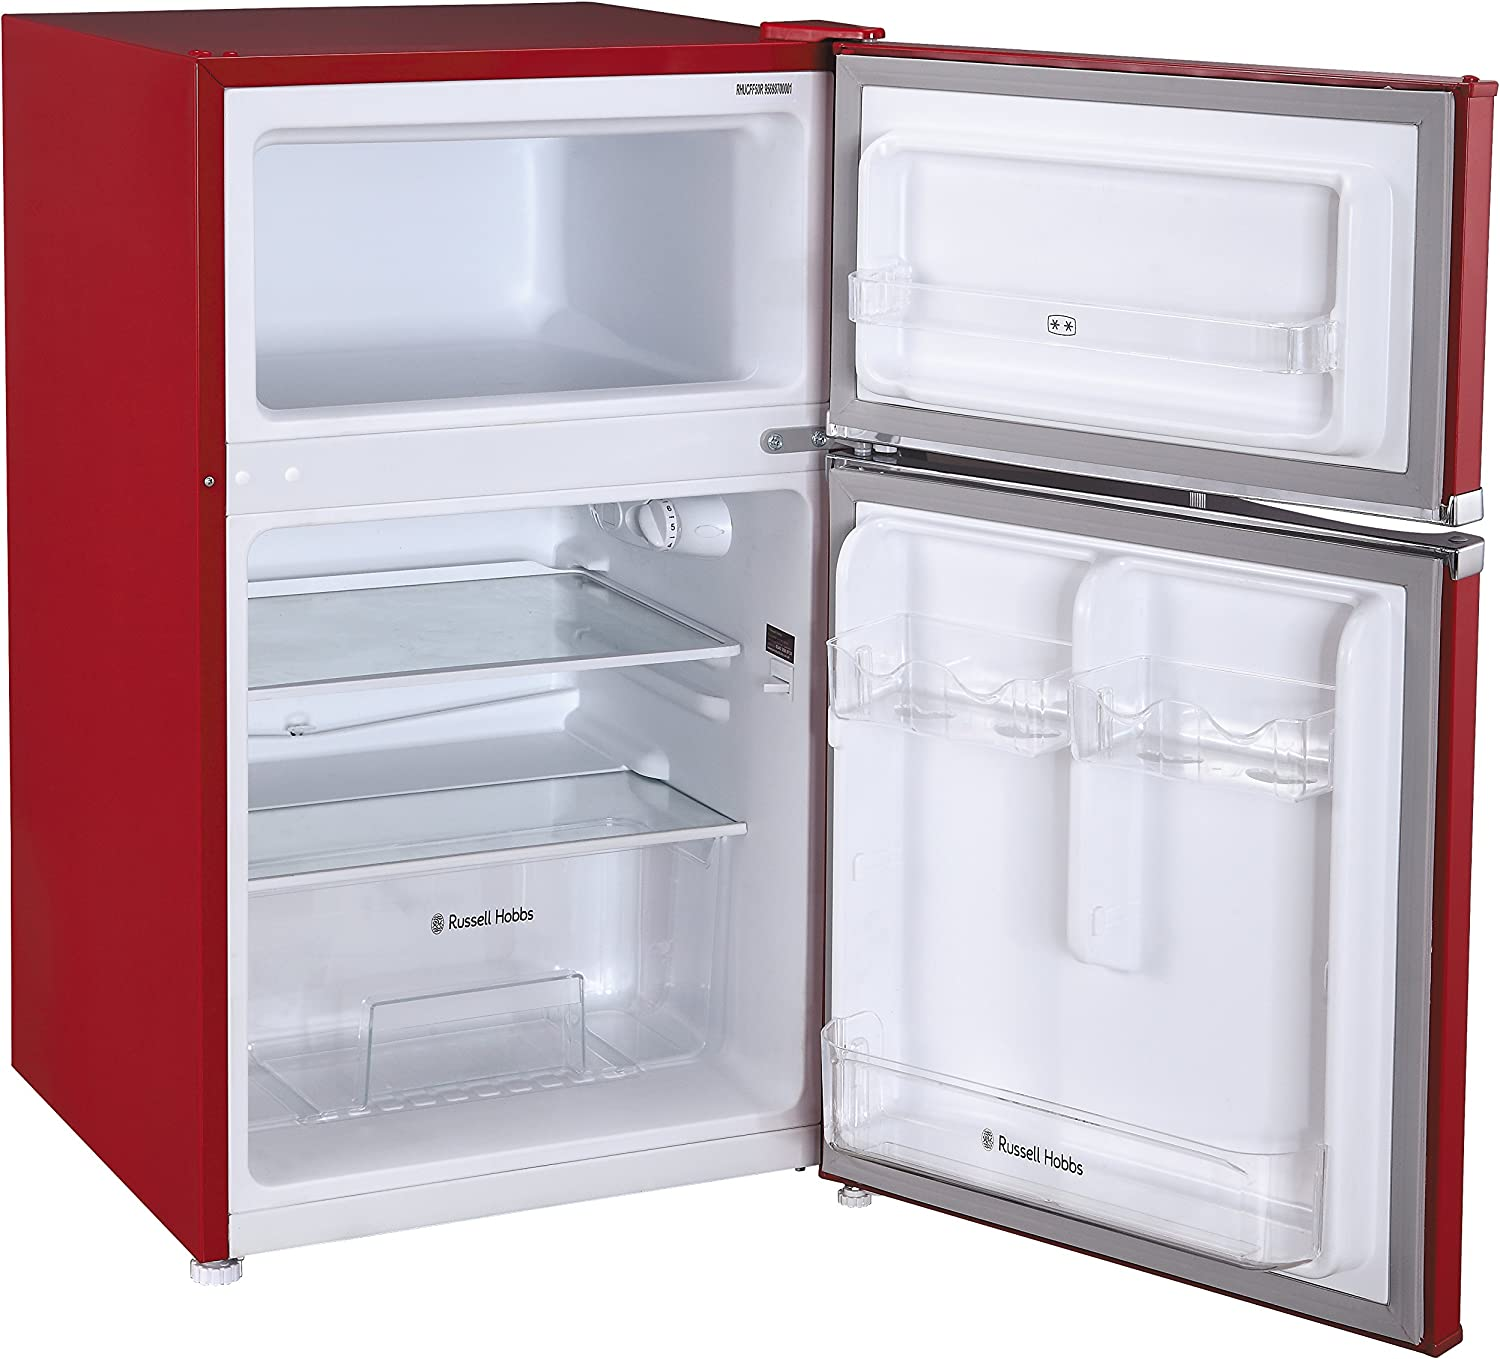 Free 2 Year Guarantee /& RHMM701R 17L Manual 700w Solo Microwave Red Russell Hobbs RHUCFF50R Red 50cm Wide Under Counter Freestanding Fridge Freezer